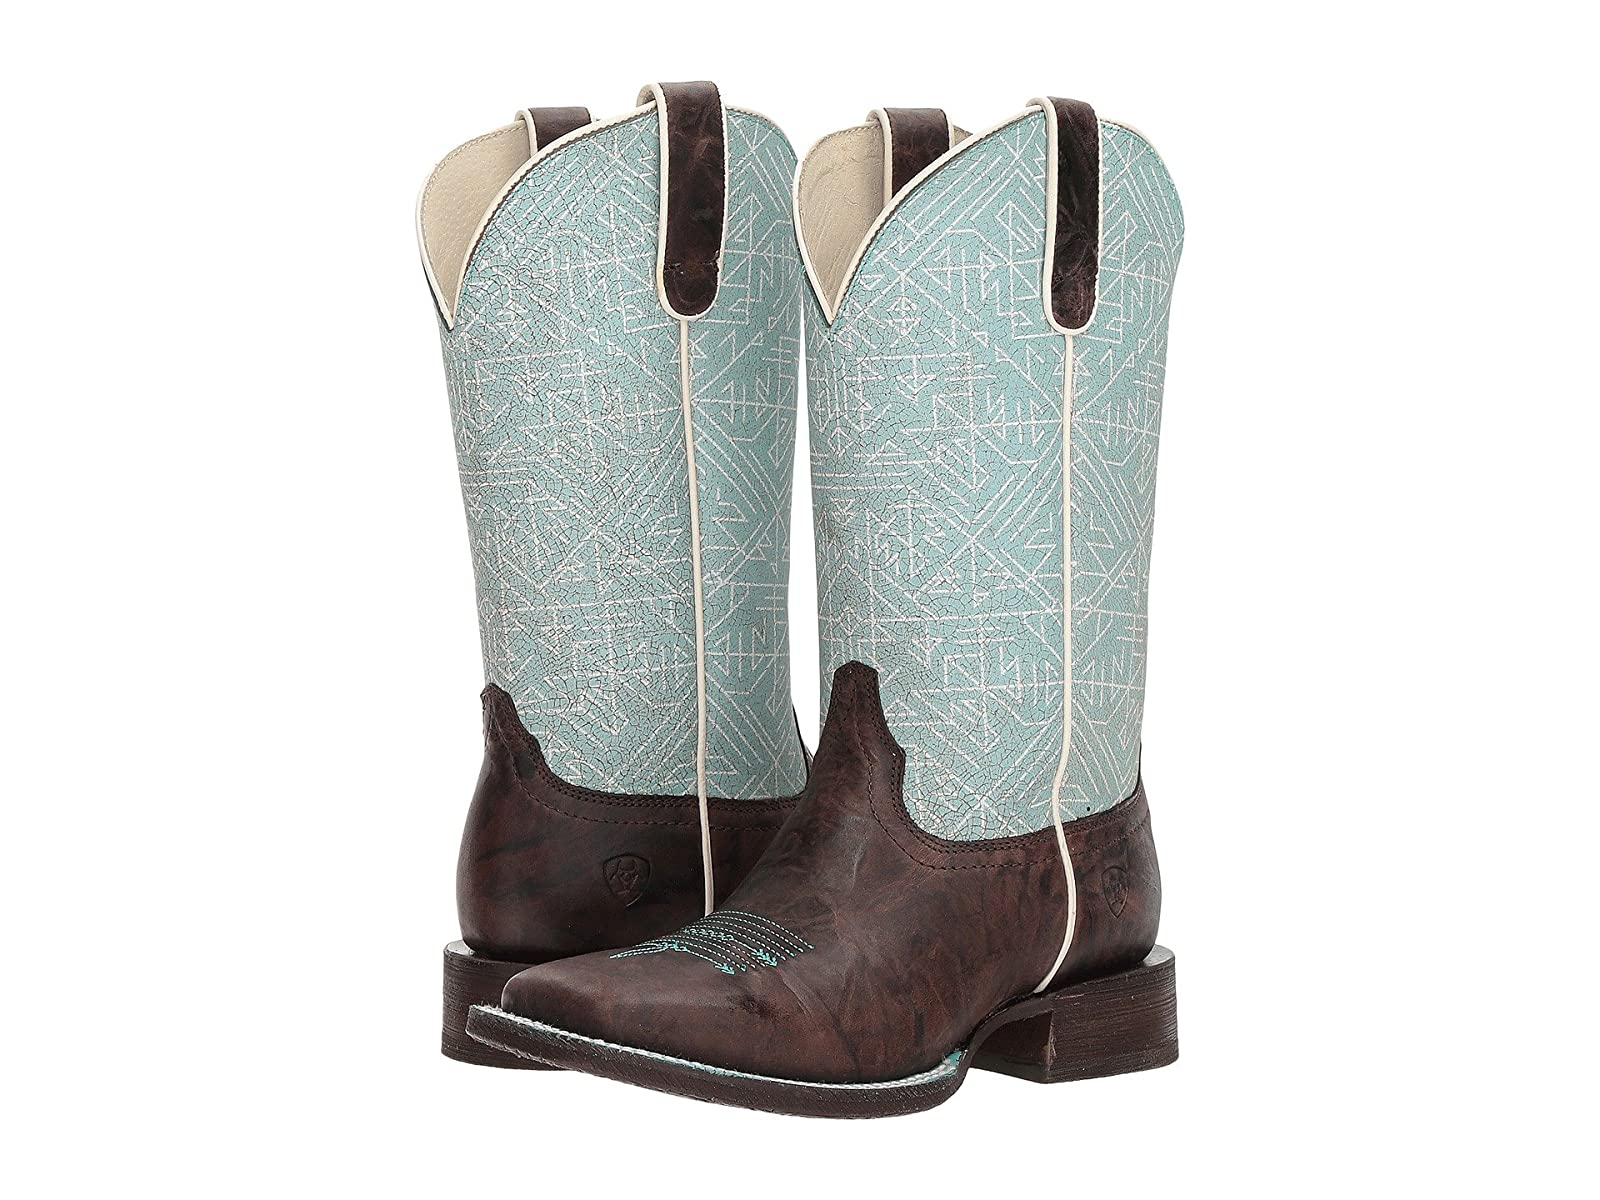 Ariat Circuit SavannaSelling fashionable and eye-catching shoes